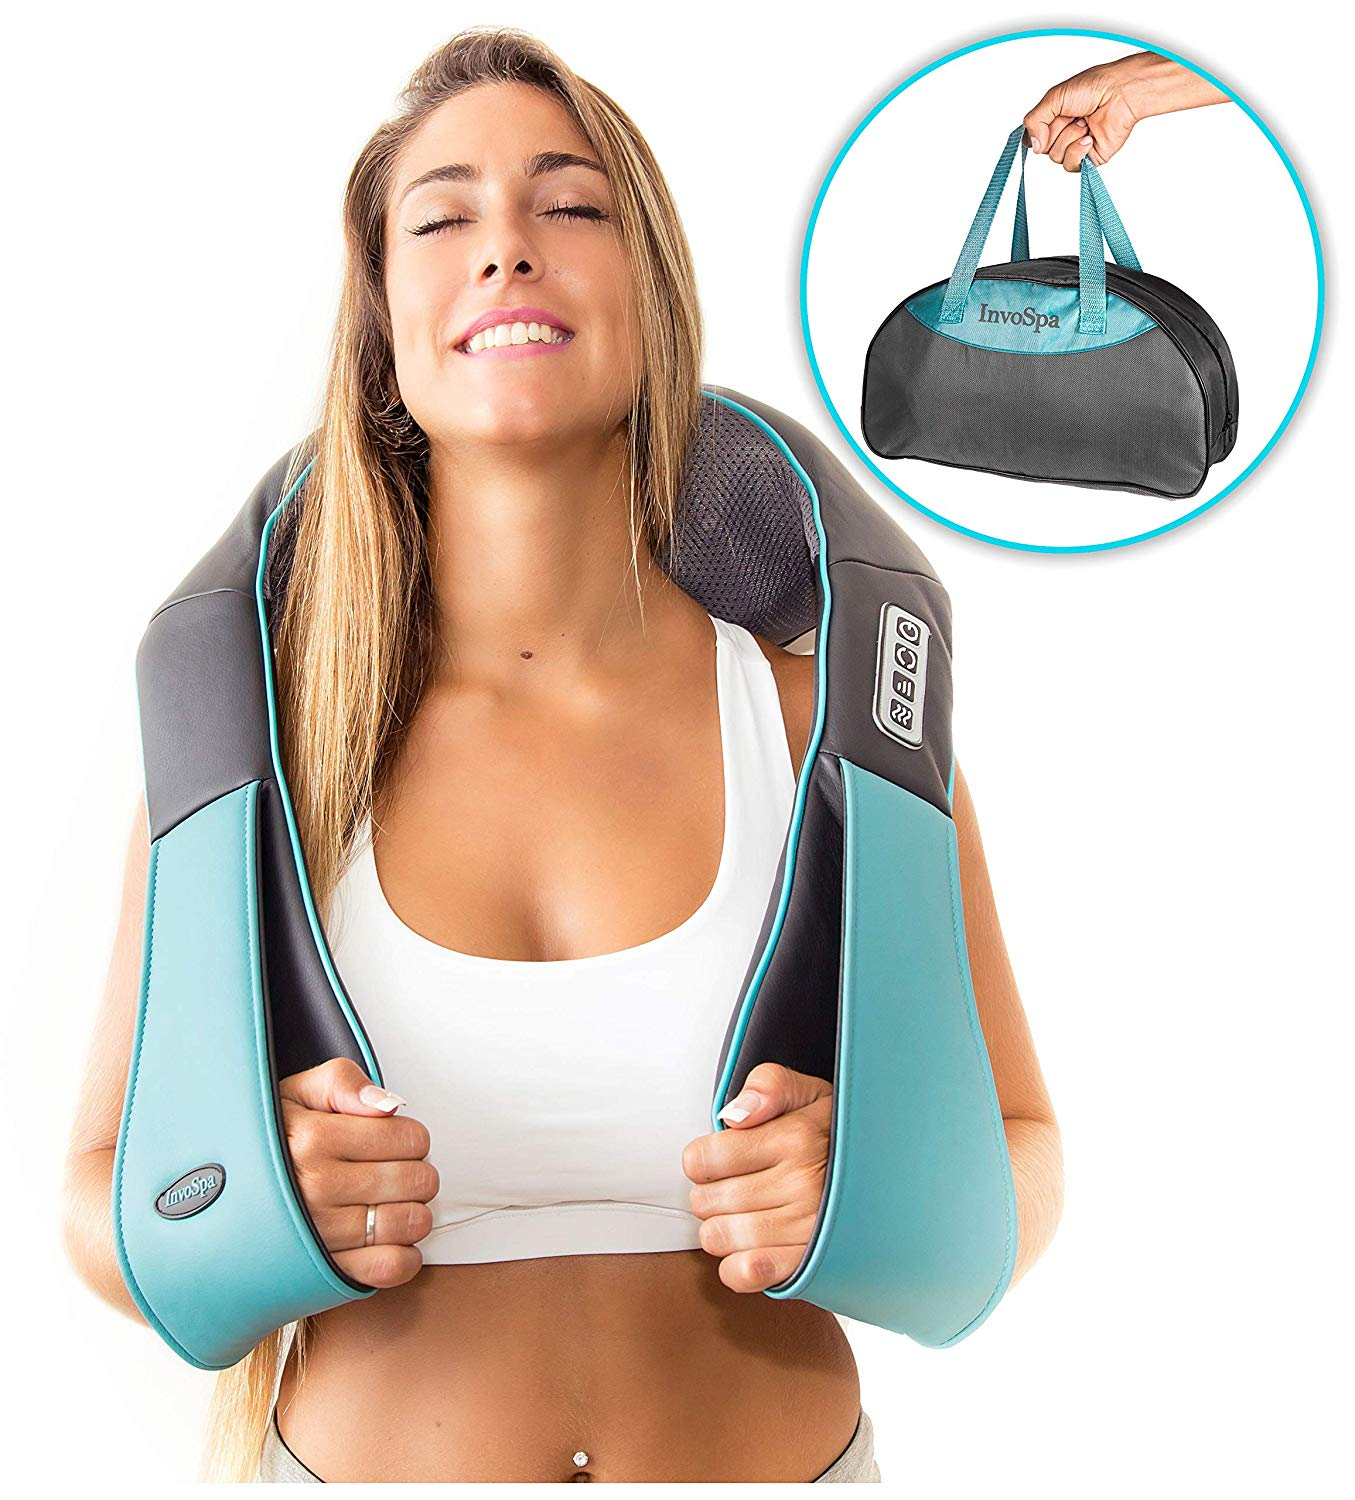 Shiatsu Back Neck and Shoulder Massager with Heat - Deep Tissue 3D Kneading Pillow Massager for Neck, Back, Shoulders, Foot, Legs for $21 at Amazon + FS with Prime